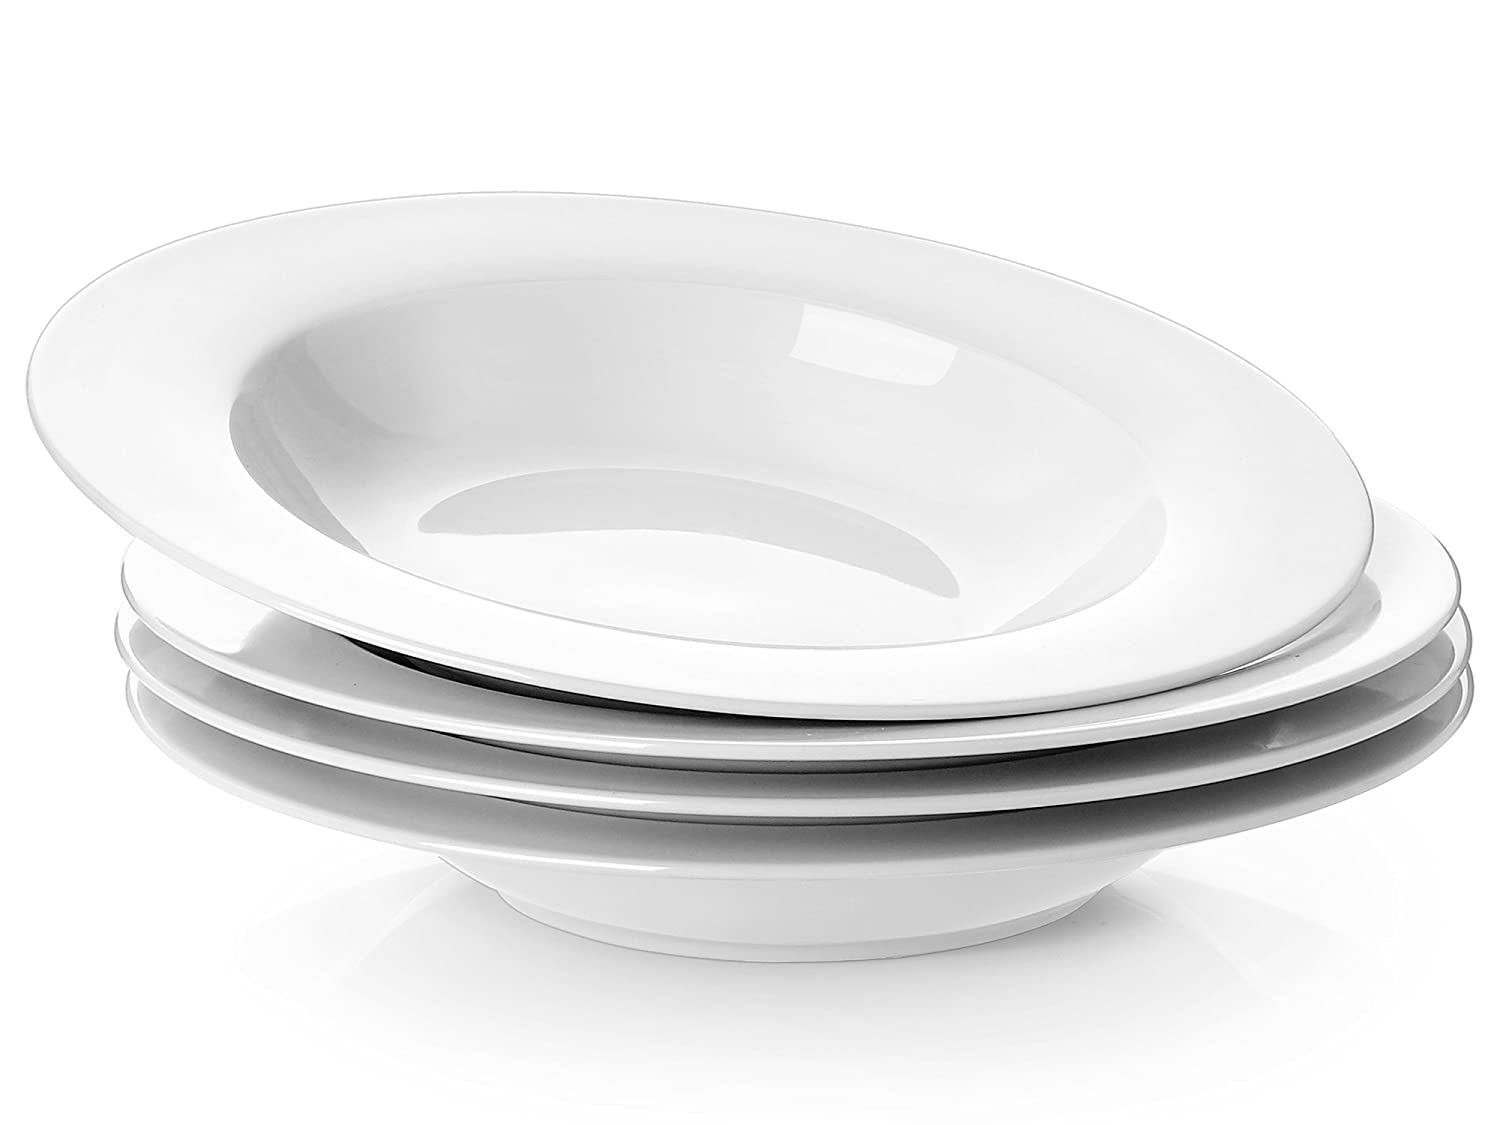 YHY 8-1/4-inch Porcelain Soup Bowls/Rim Bowl Set, White, Set of 4 Y YHY SYNCHKG099698